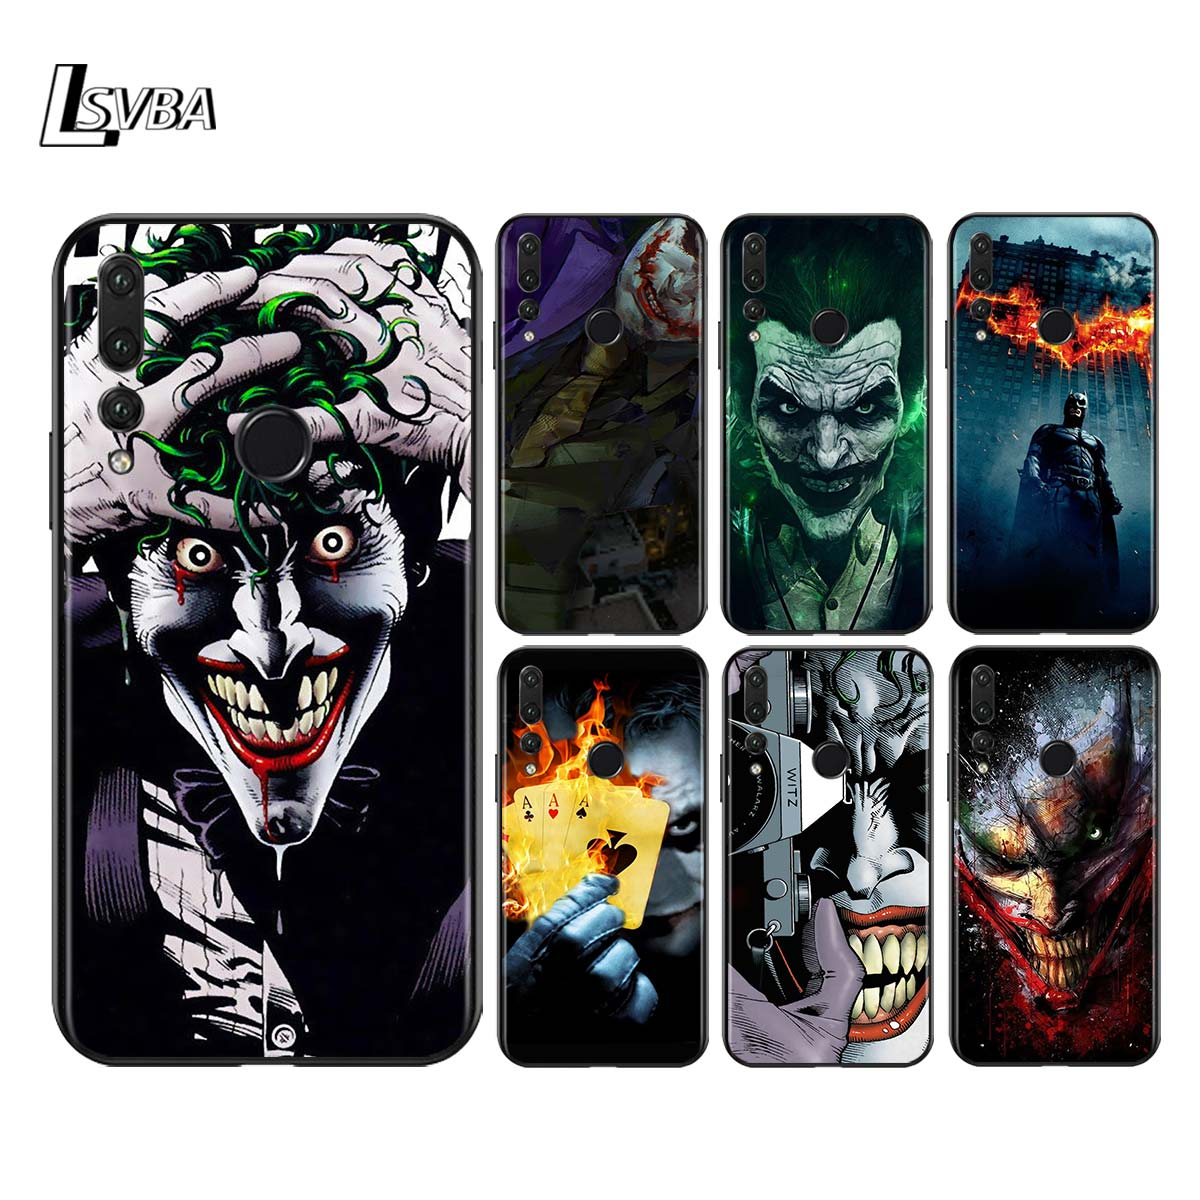 Silicone Soft Cover <font><b>Marvel</b></font> Batman Joker for Huawei Honor 30 20 Pro 10i 9A 9S 9X 8X 10 9 Lite 8 8A 7A 7C Pro <font><b>Phone</b></font> <font><b>Case</b></font> image